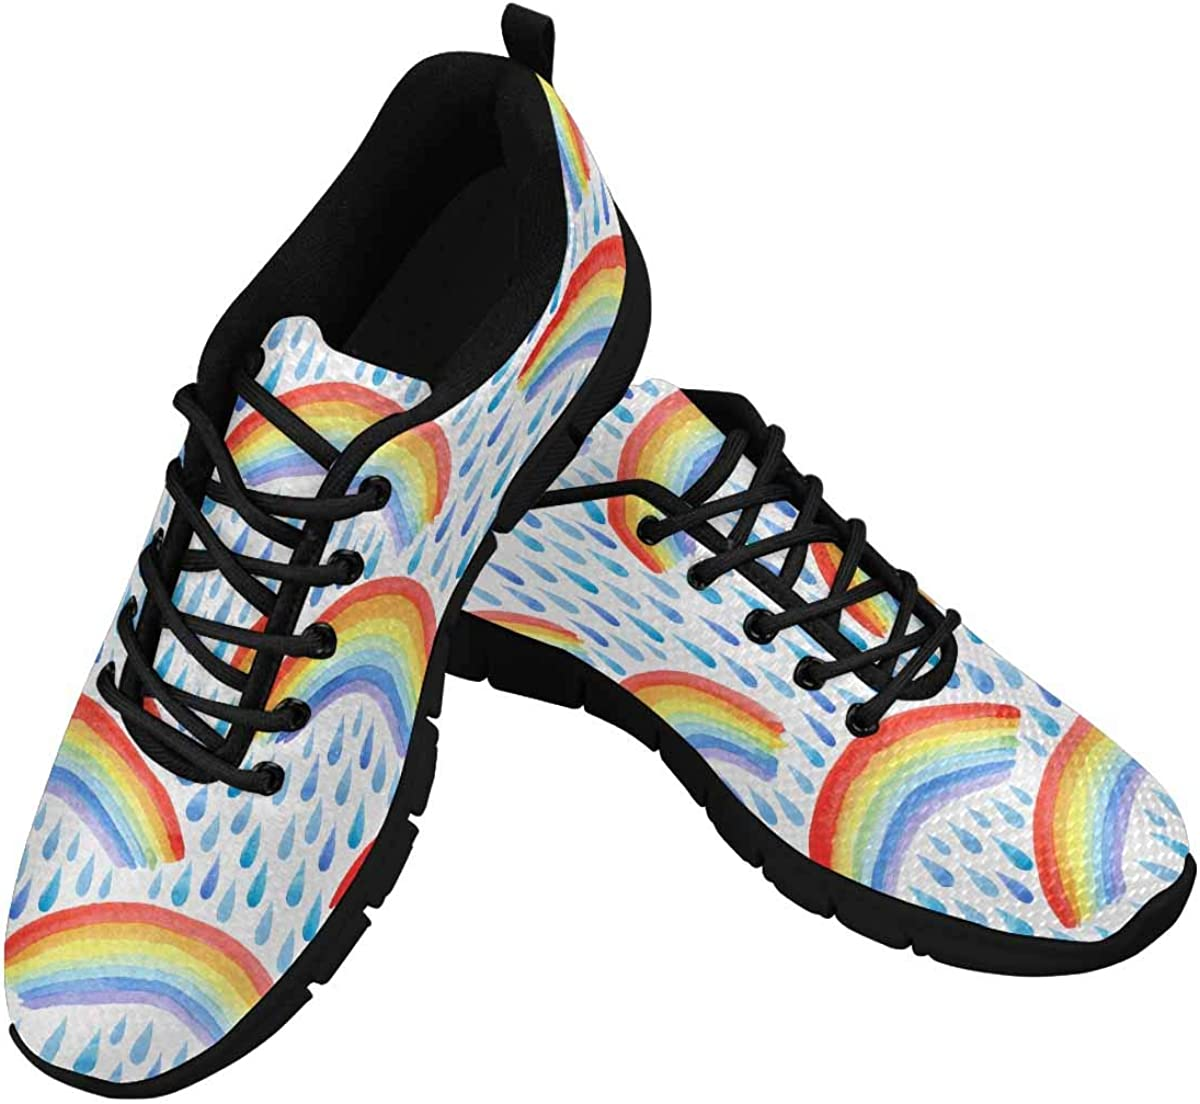 INTERESTPRINT Rainbow Rainy Women's Athletic Mesh Breathable Casual Sneakers Fashion Tennis Shoes